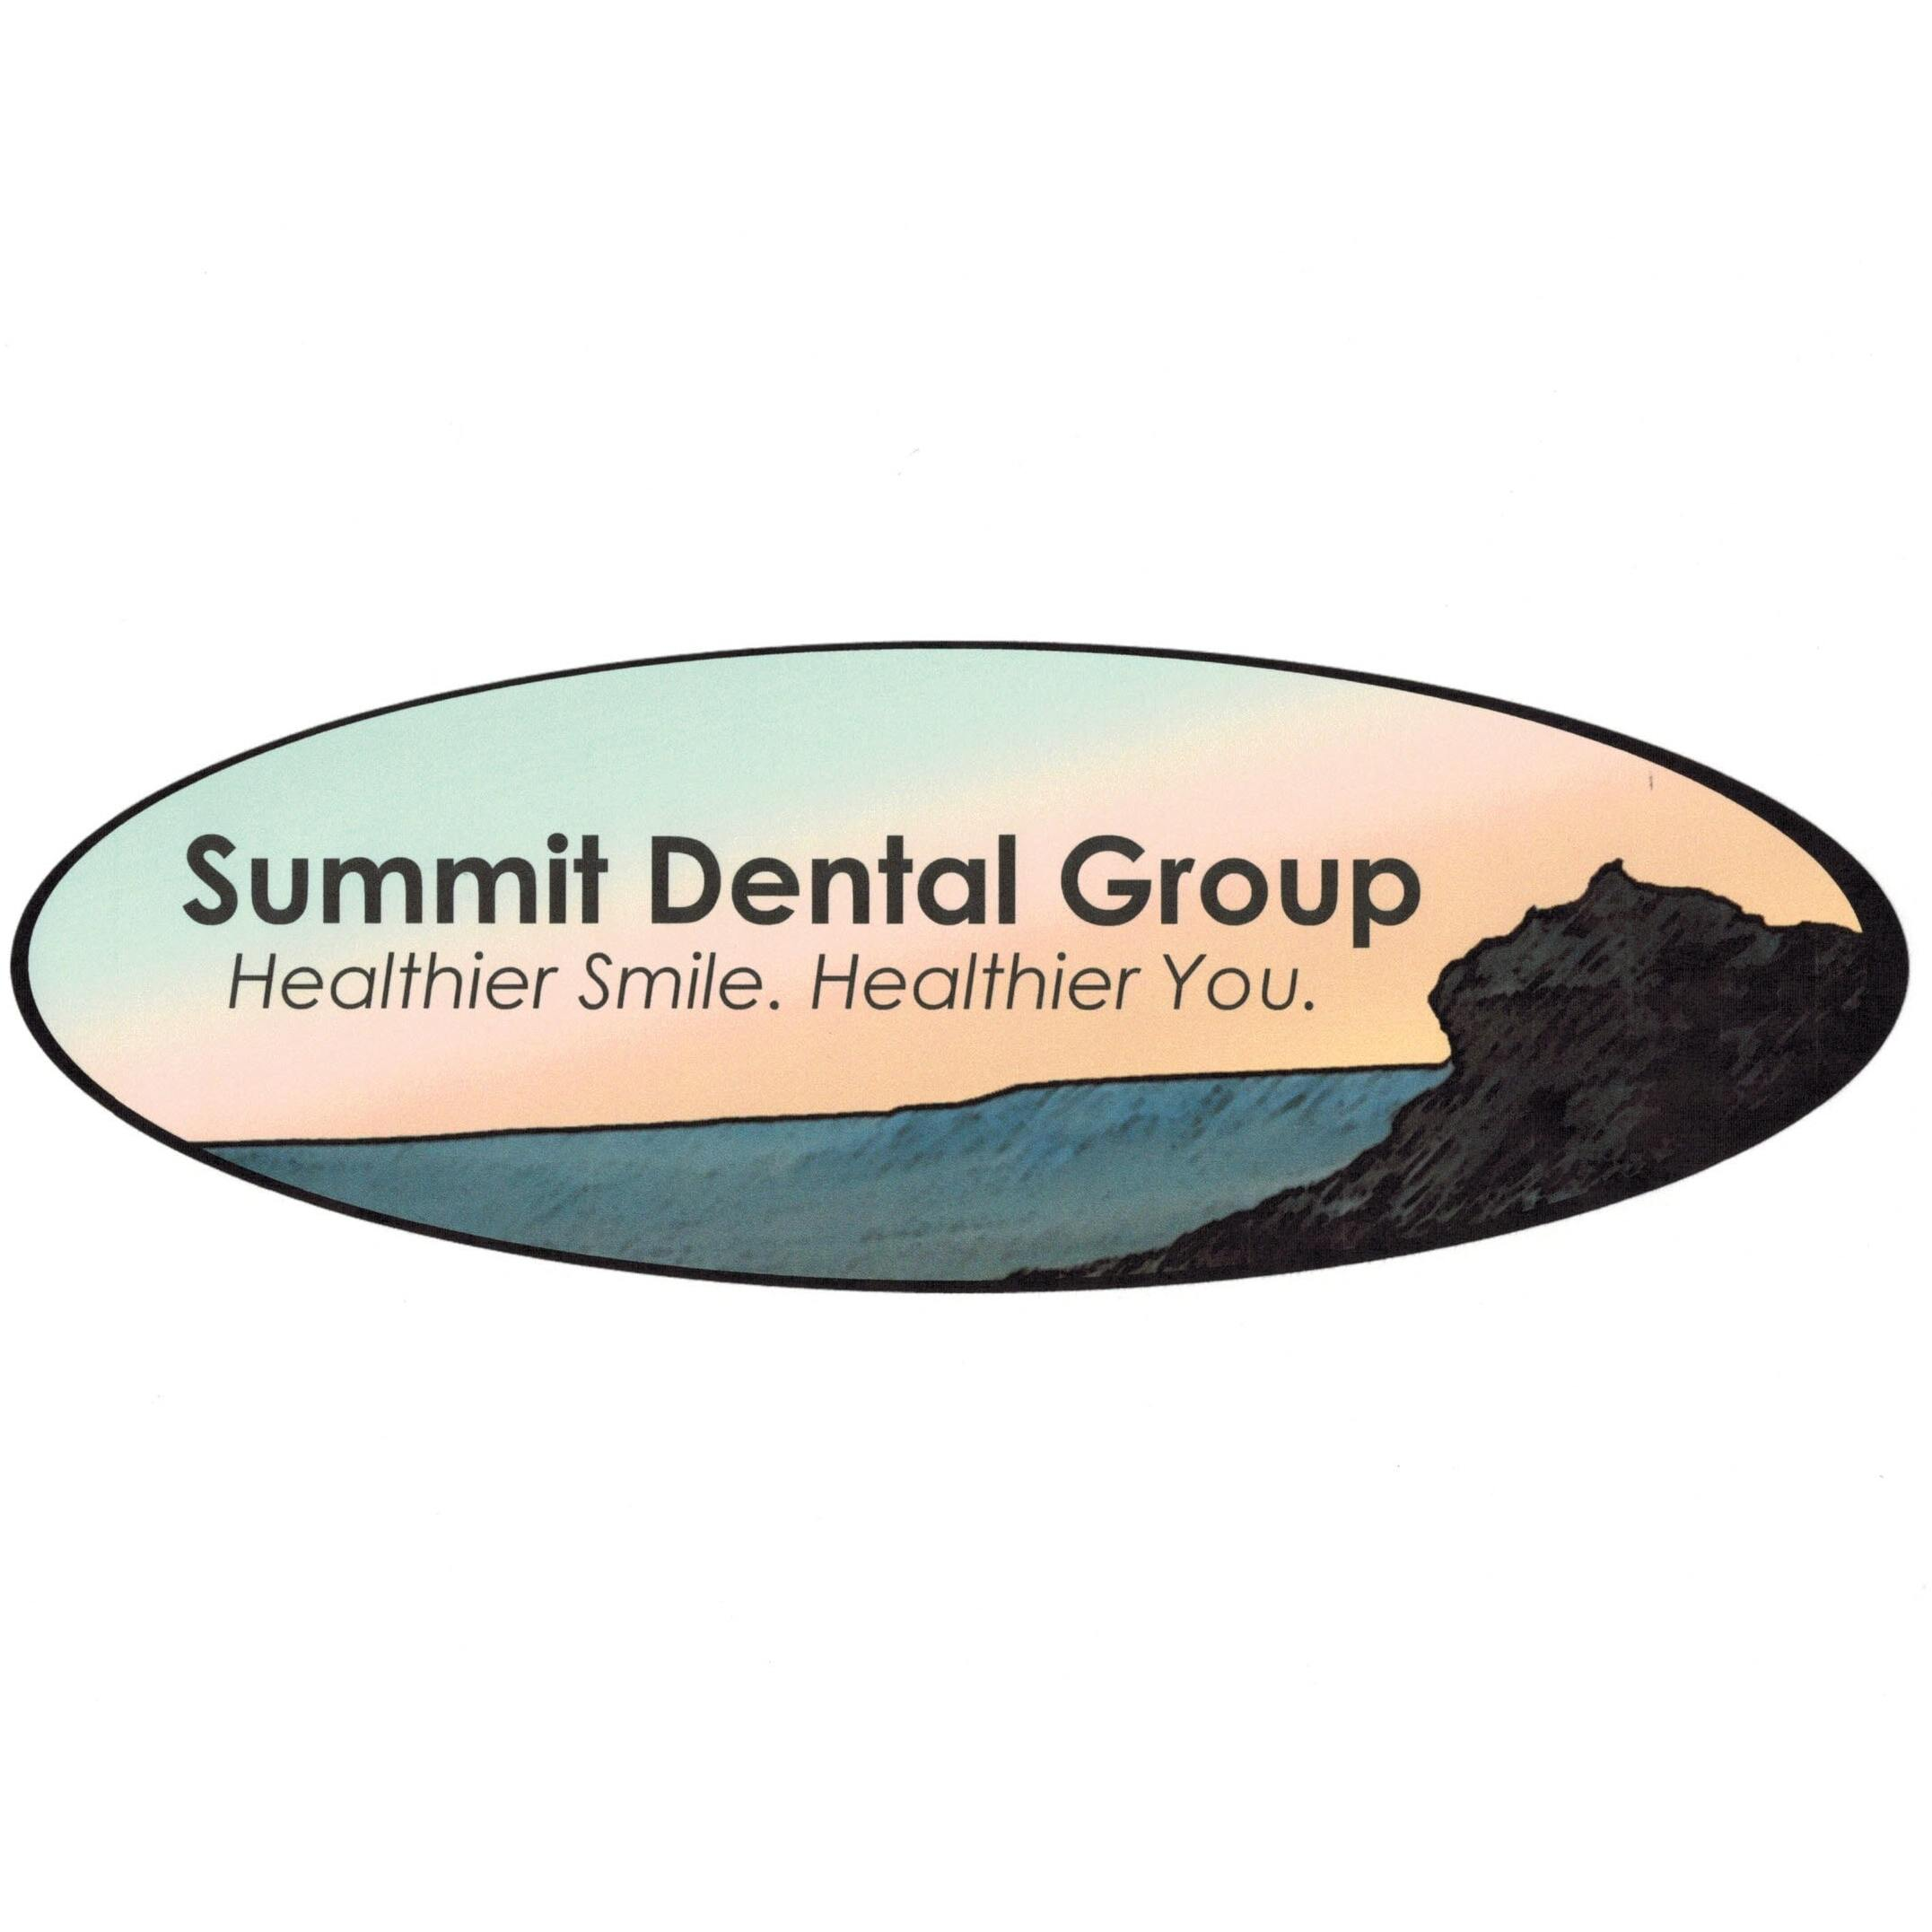 The Summit Dental Group